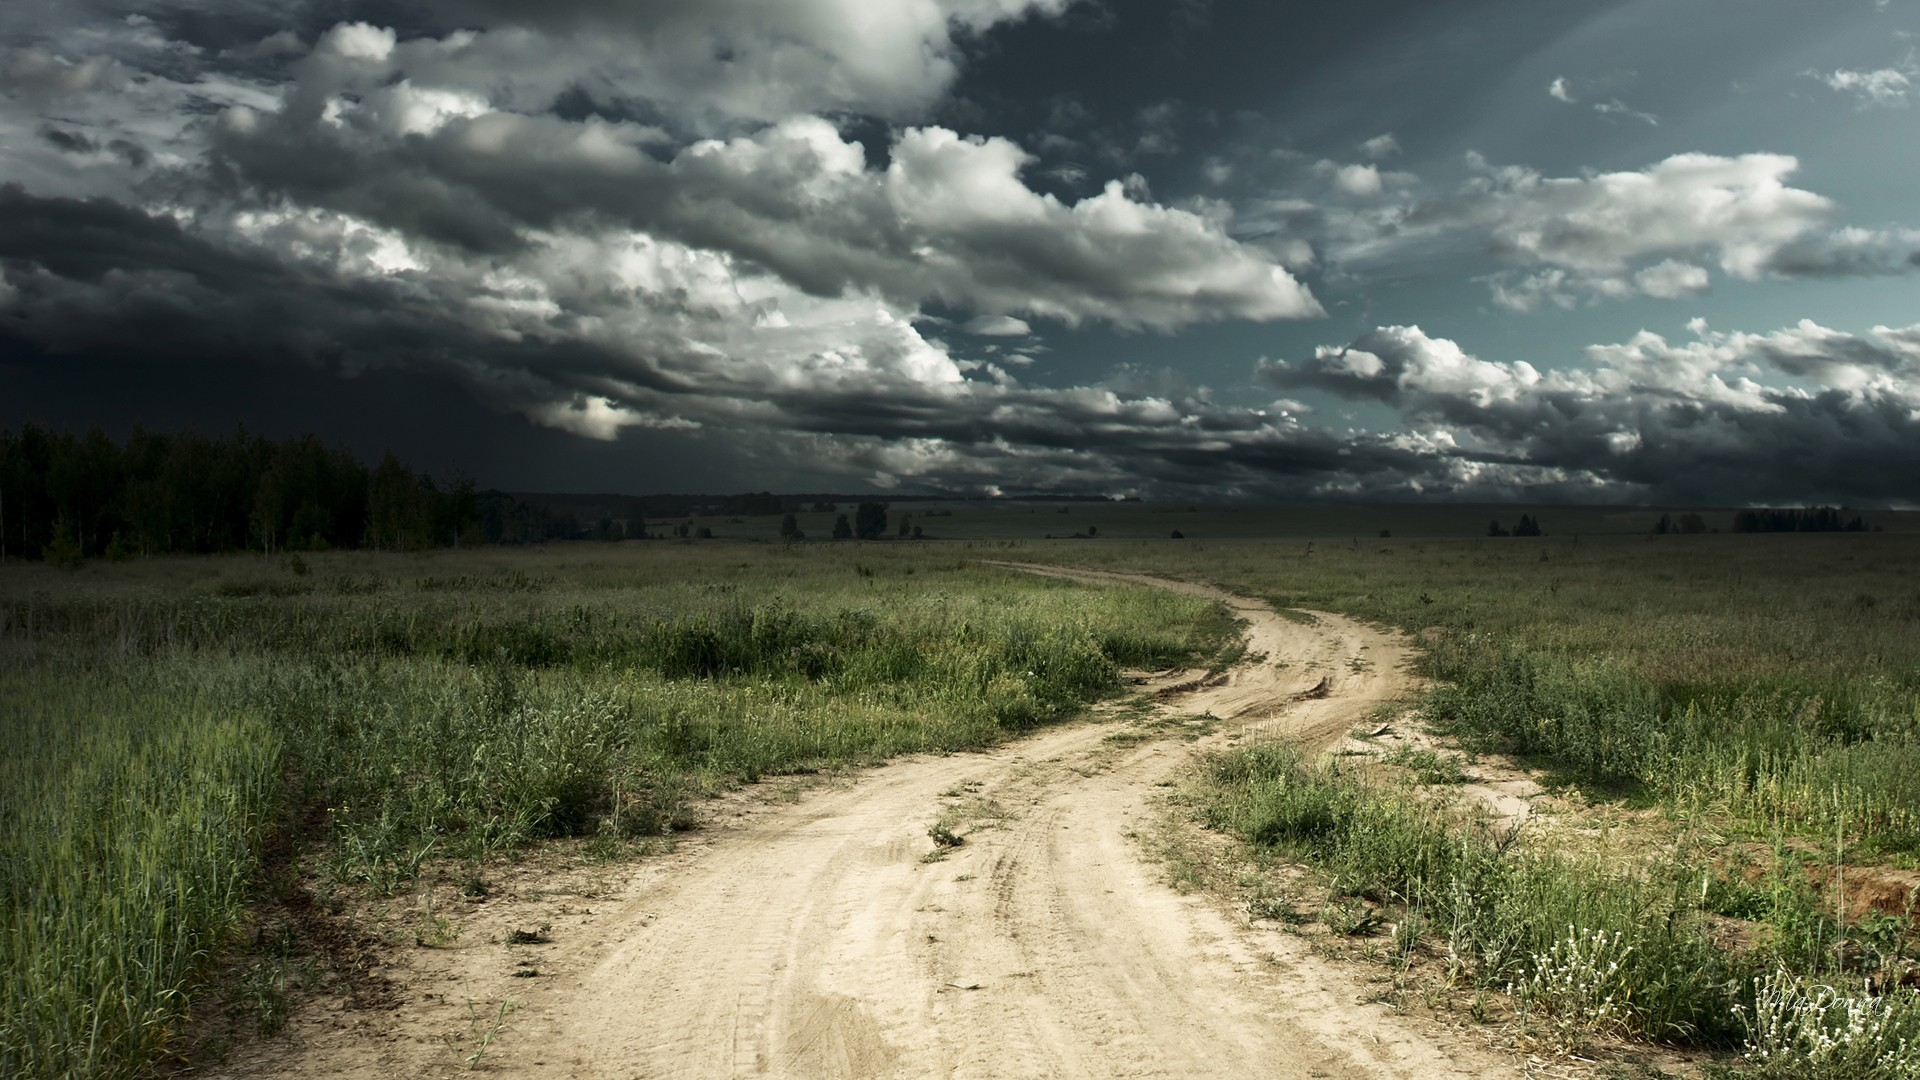 Stormy Tag – Road Stormy Sky Fields Path Farm Dark Country Tempestuous  Rough Tumultuous Rabid Storm